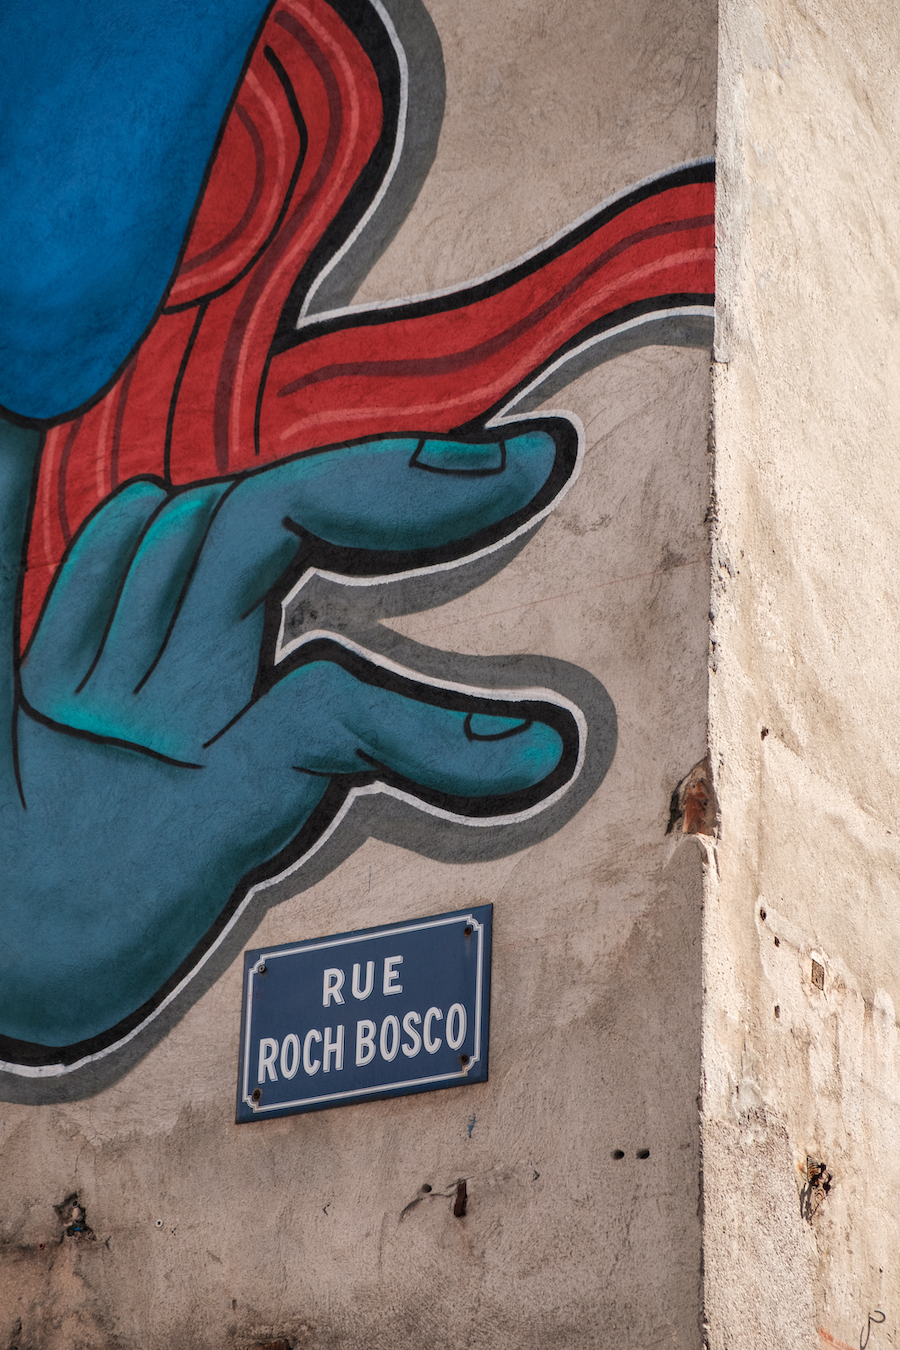 Street art and graffiti in Sete, Southern France ~ By Ben Holbrook from DriftwoodJournals.com23